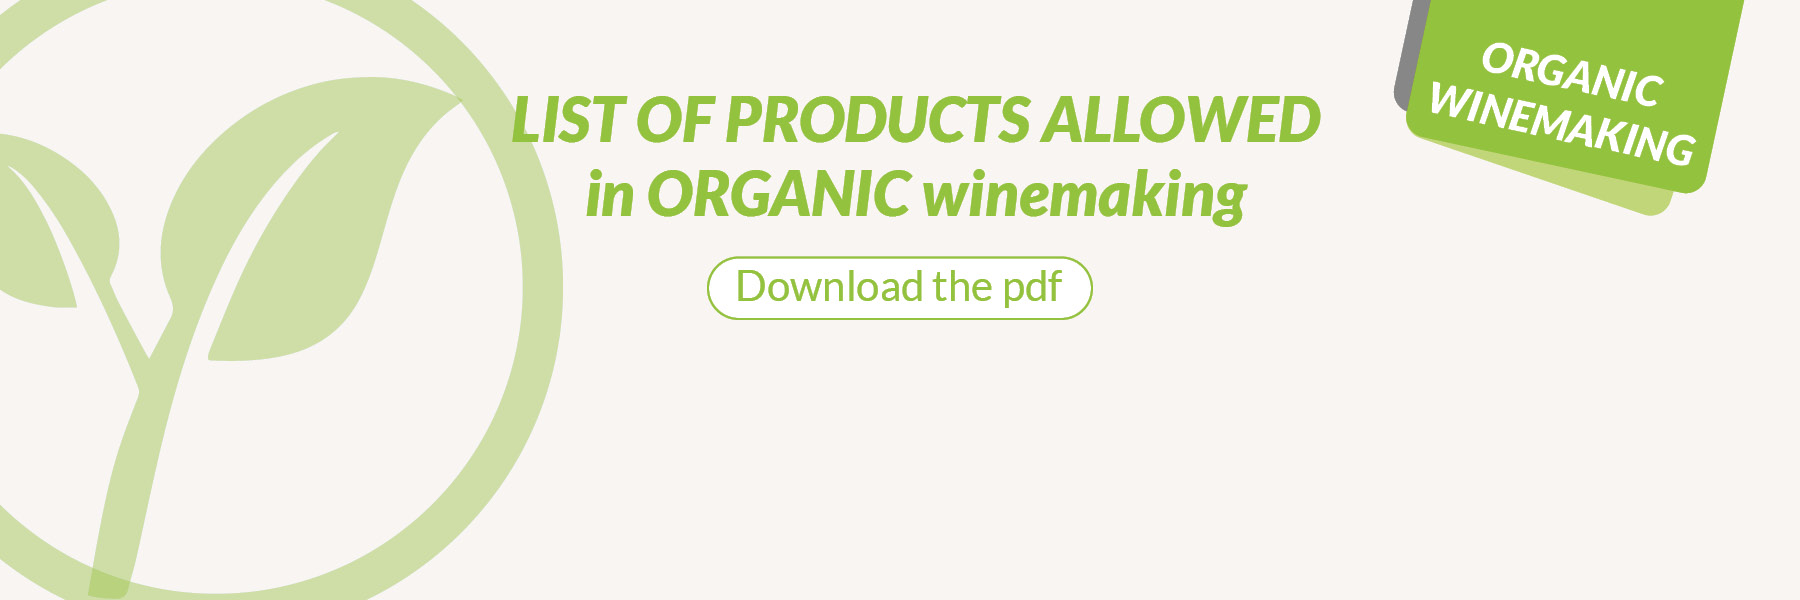 List of products allowed in organic winemaking